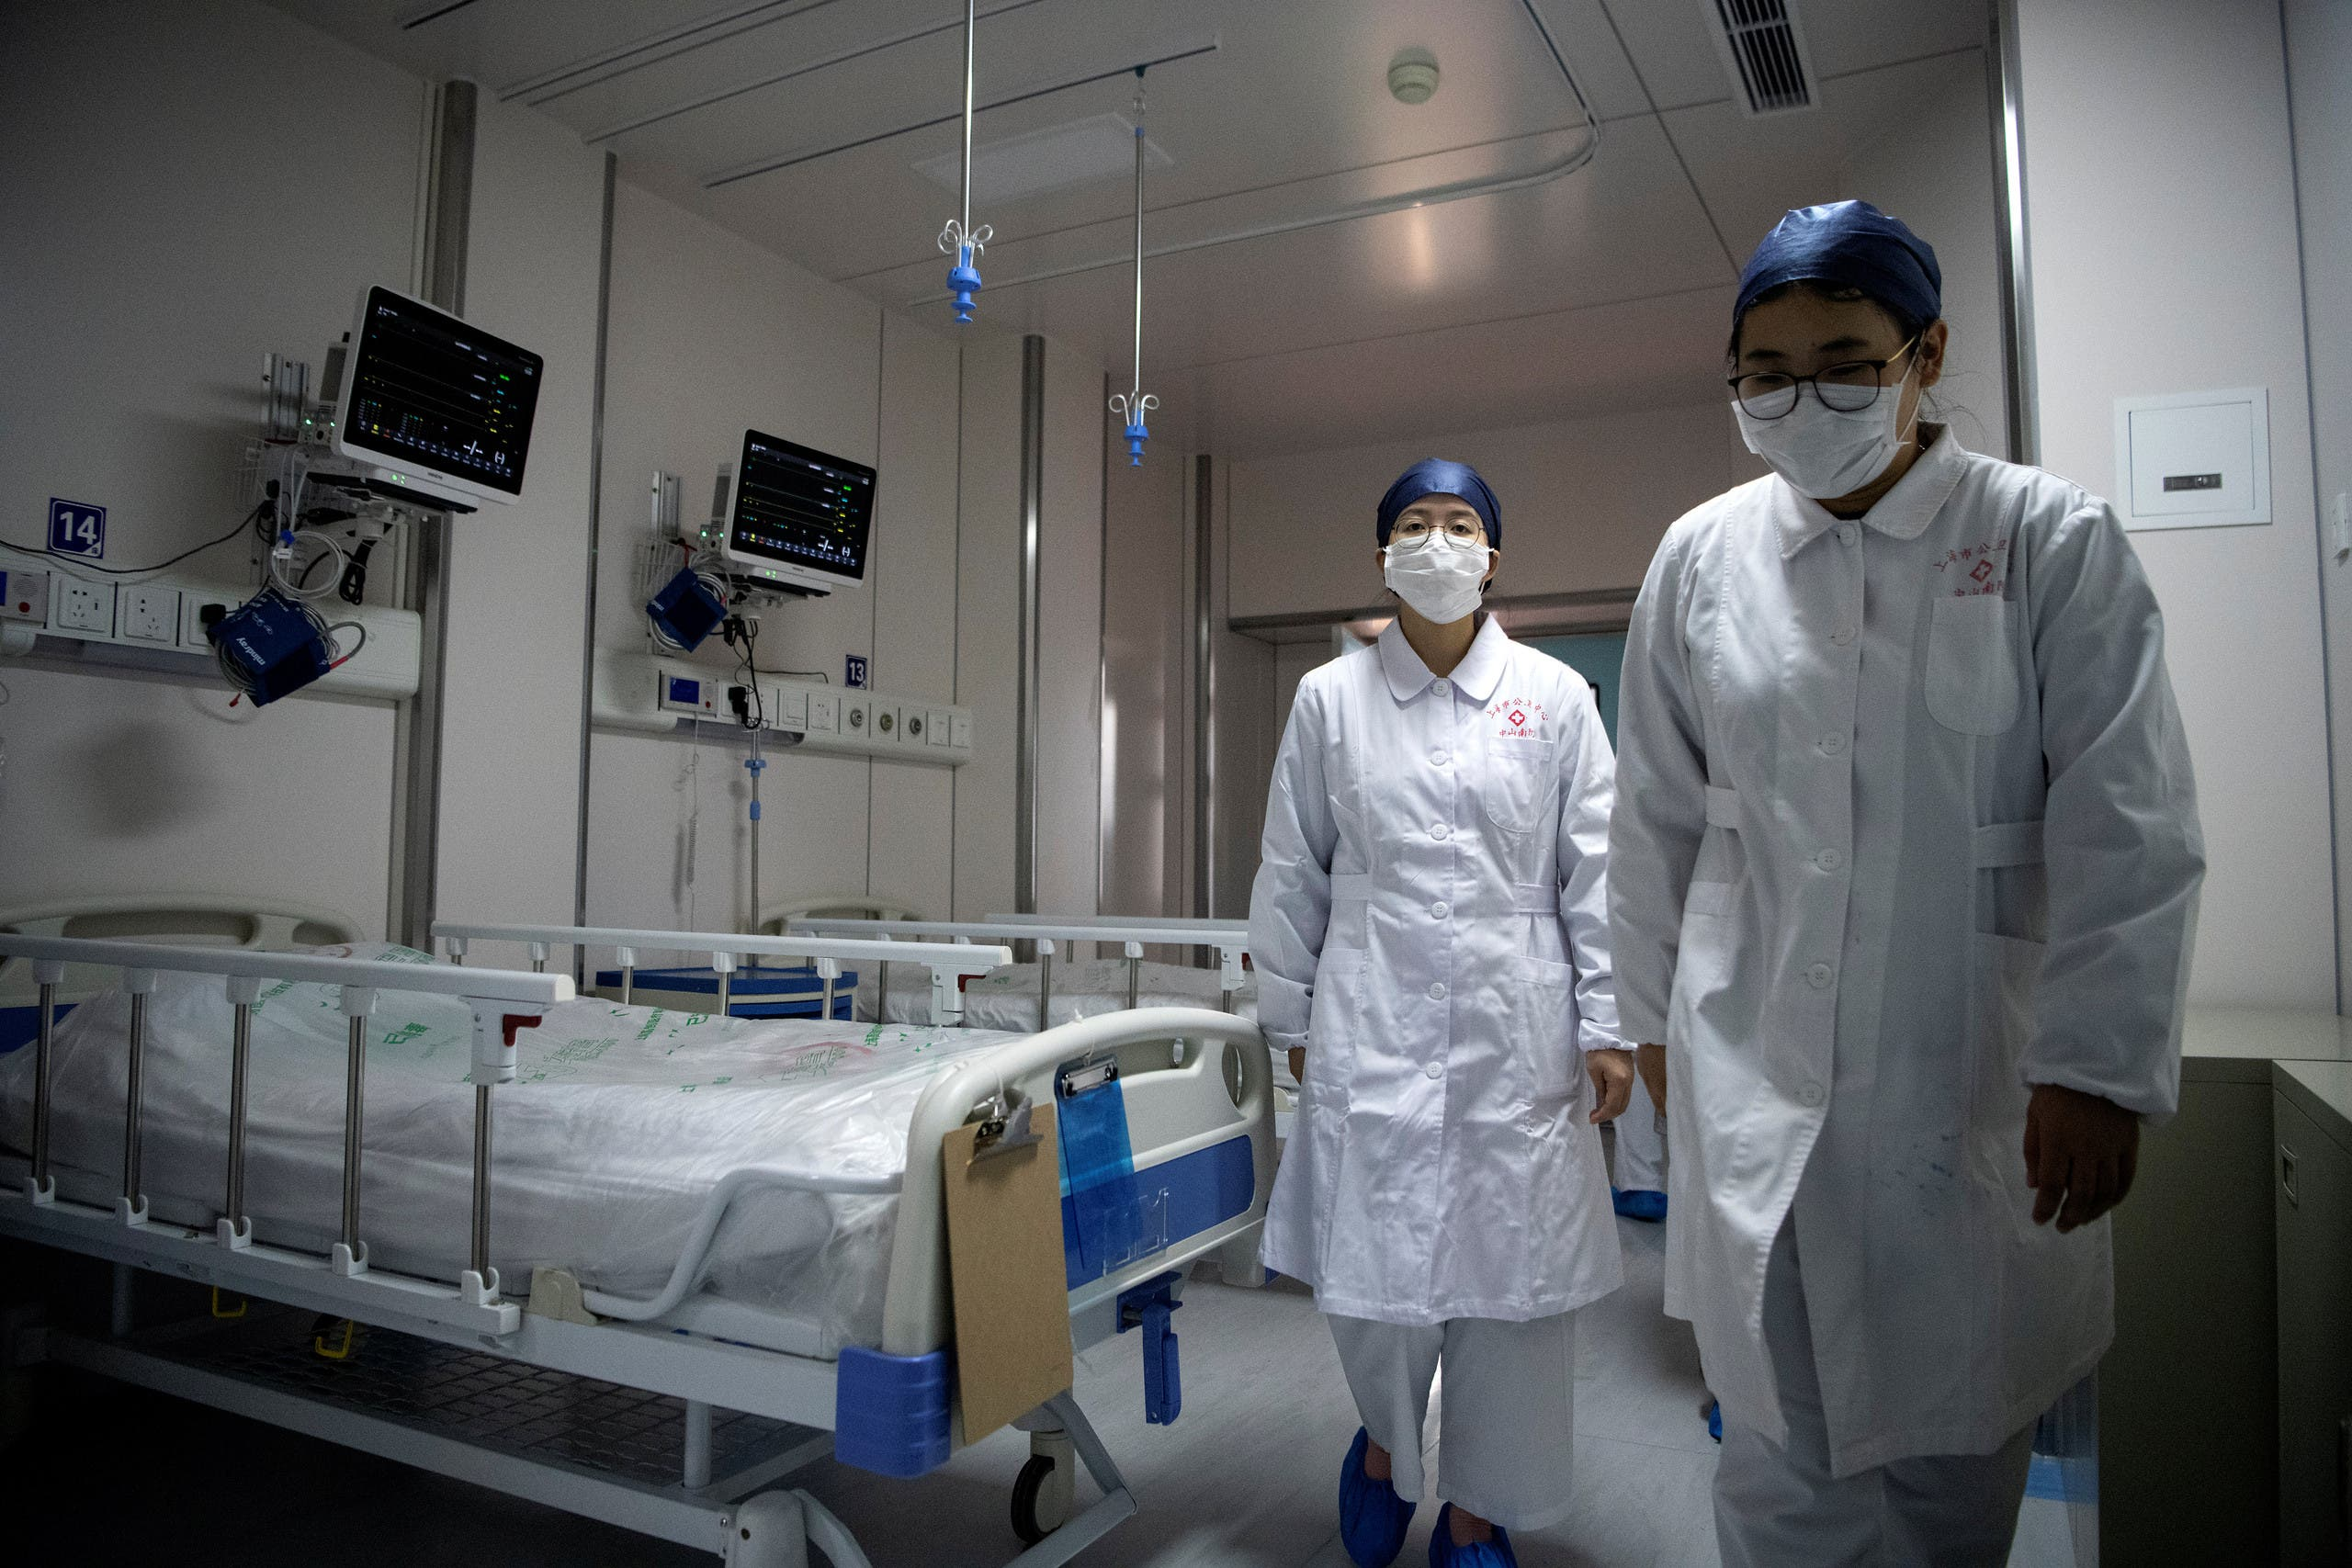 Nurses walk inside a quarantine room for coronavirus patients at finished but still unused building A2 of the Shanghai Public Clinical Center, in Shanghai, China February 17, 2020. (Reuters)